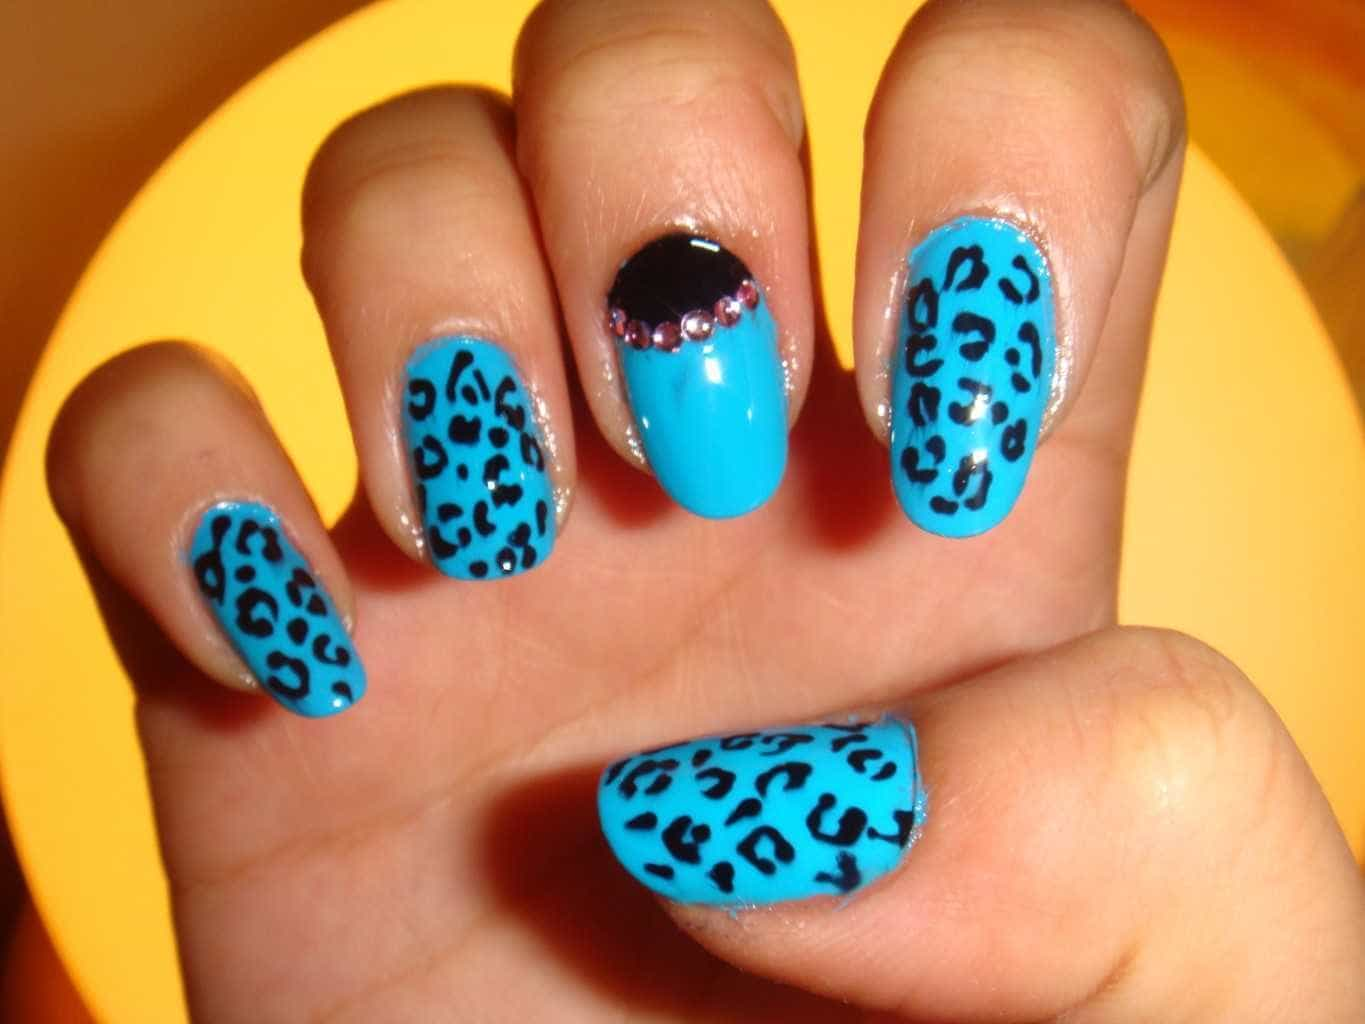 blueLeopard Nail Design for women